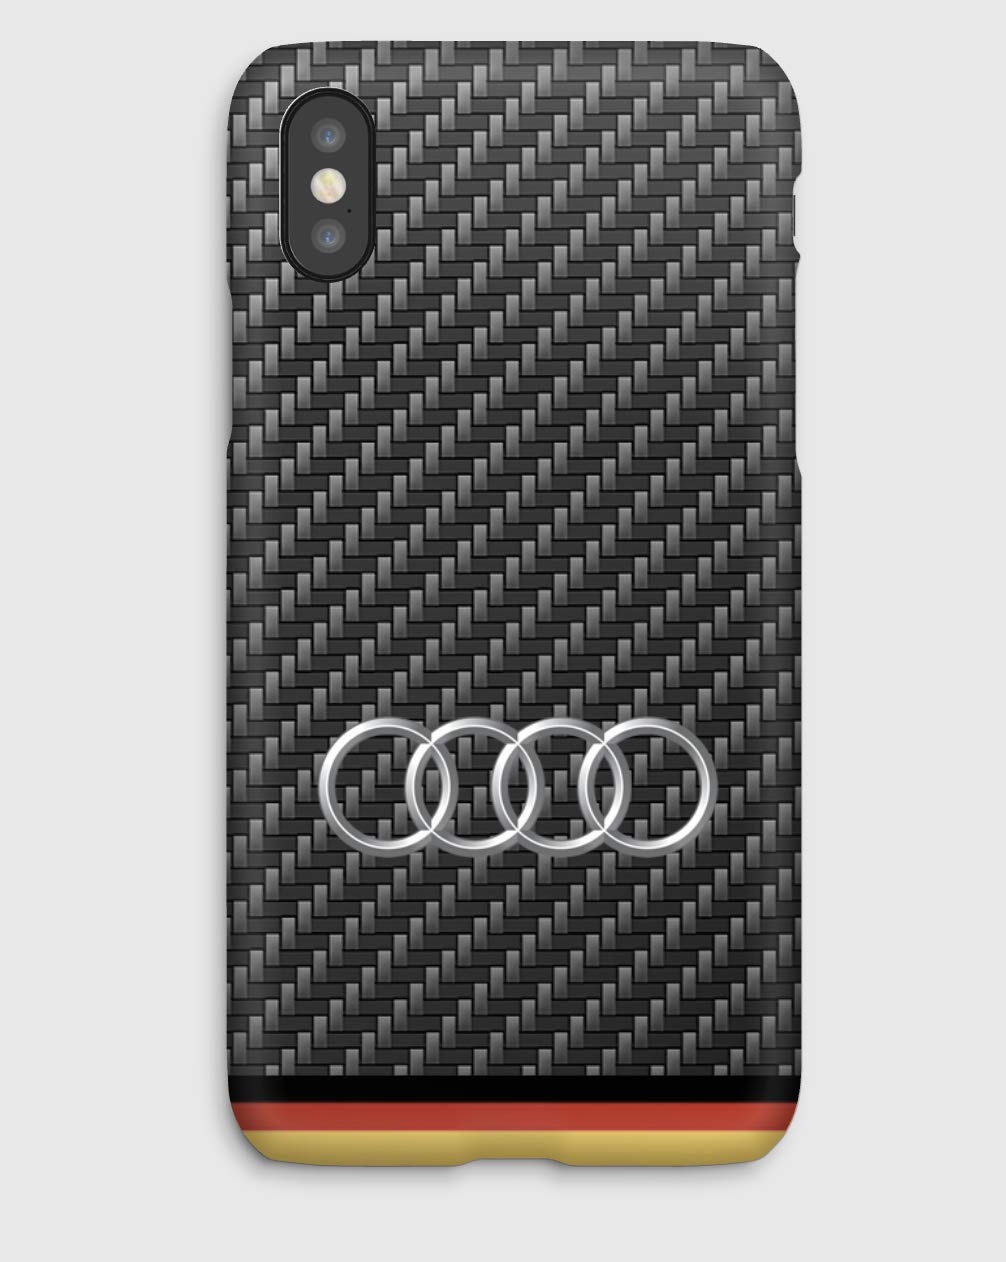 Carbon Audi cover iPhone XS, XS Max, XR, X, 8, 8+, 7, 7+, 6S, 6, 6S+, 6+, 5C, 5, 5S, 5SE, 4S, 4,